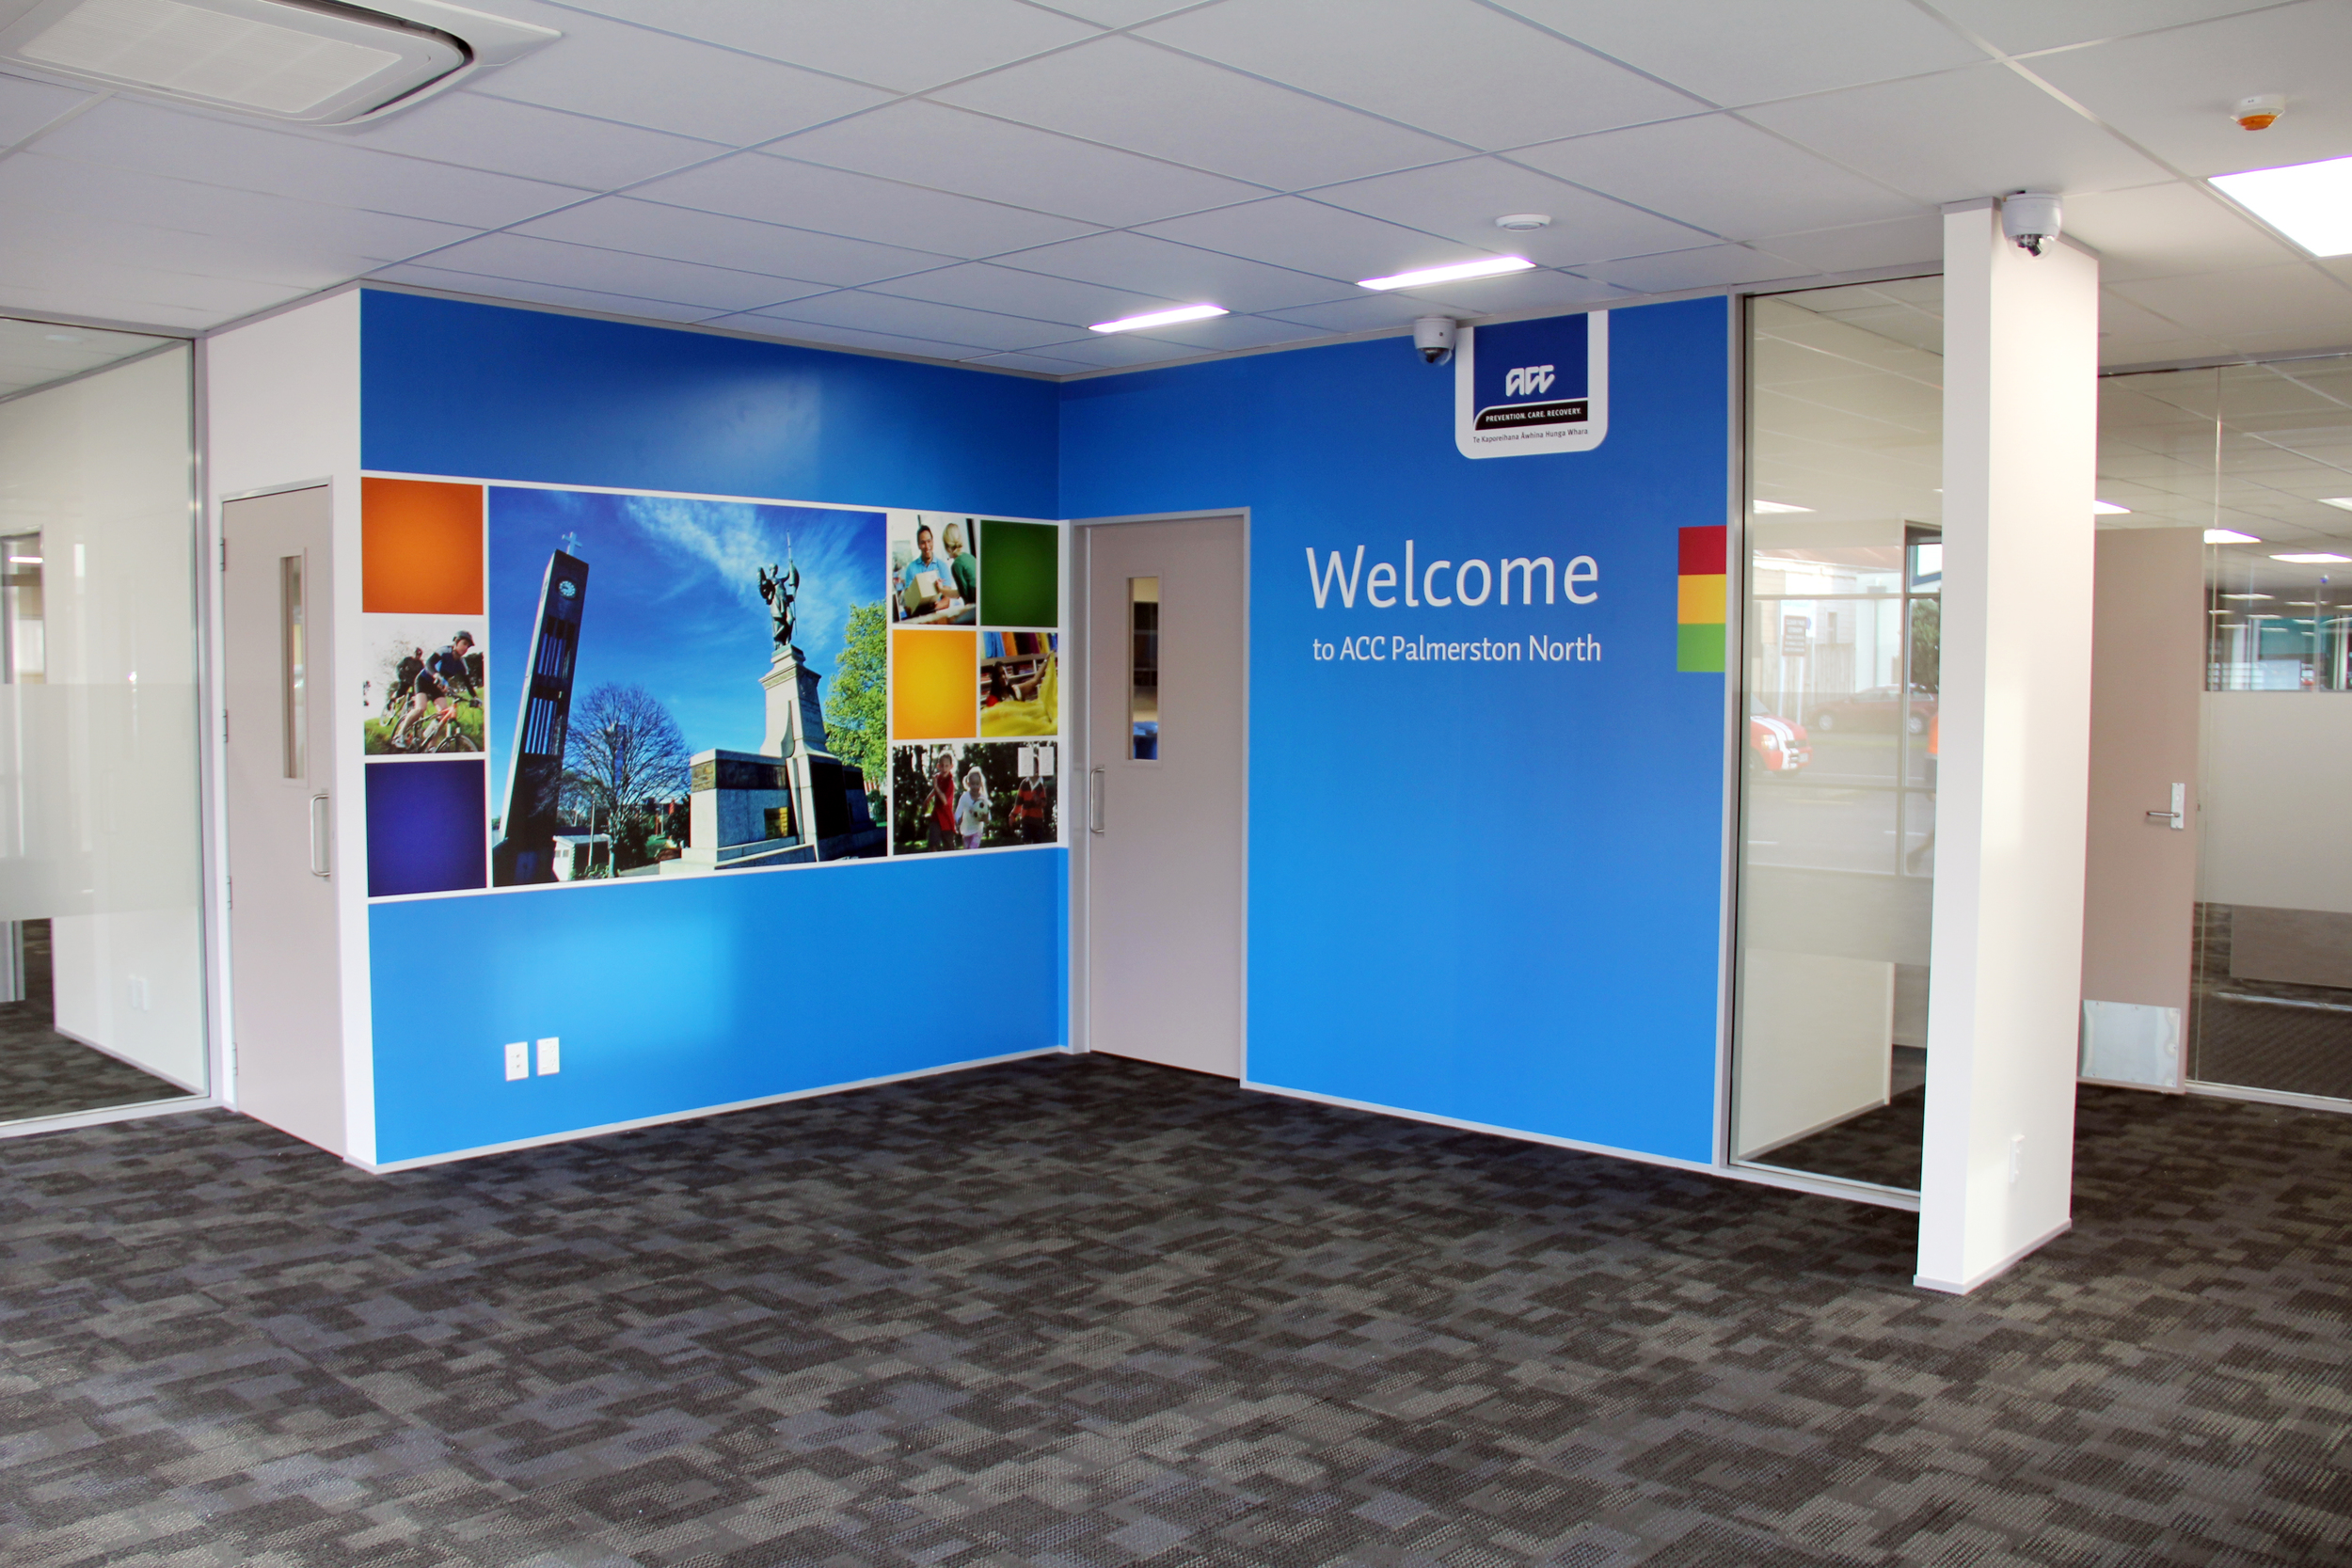 ACC     Office Fitout   S&T were selected for a Panel of Preferred Suppliers by ACC in 2011. ACC were impressed by S&T's professional approach to design, our commitment to provide exceptional service to our clients and our nouse for creating inspirational and sustainable environments on a budget.